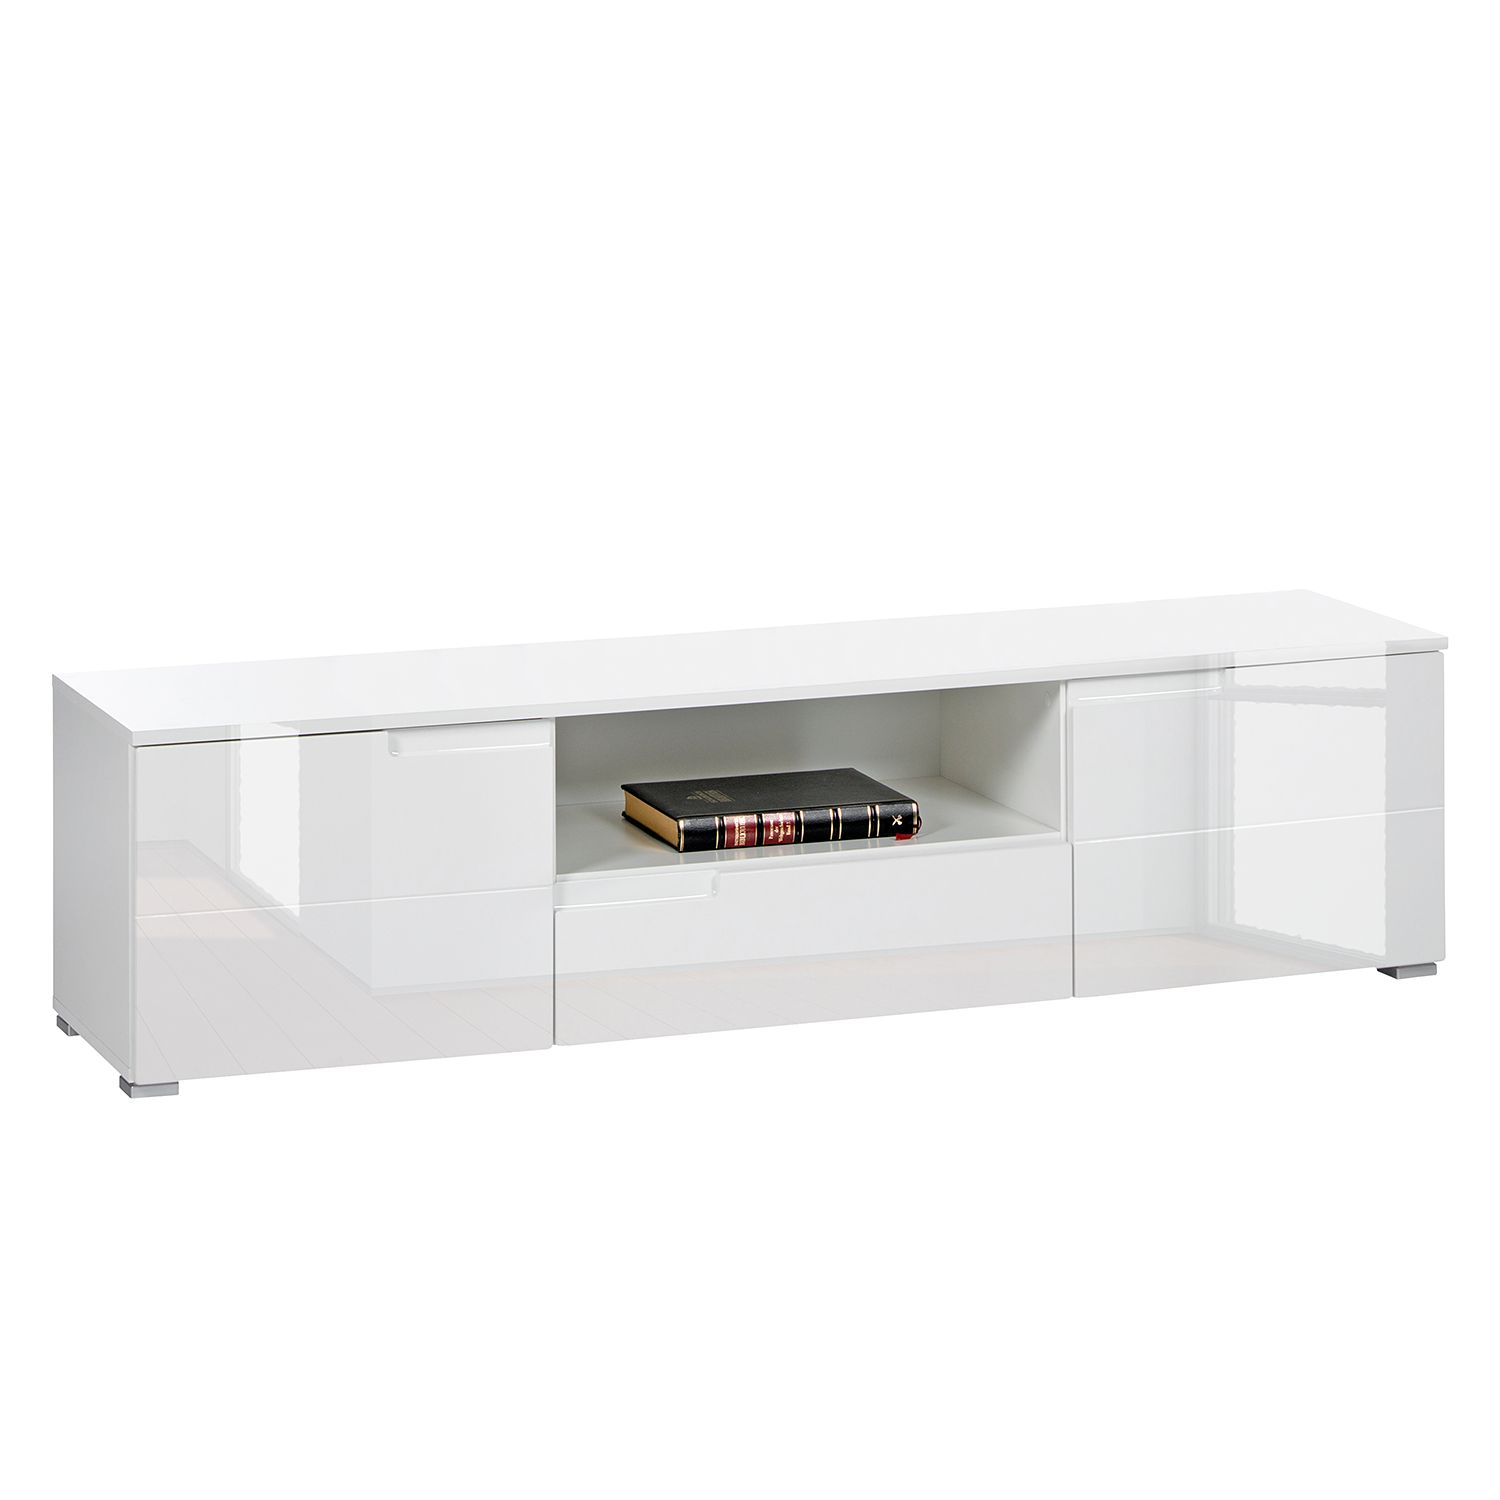 Home24 Meuble Tv Meuble Tv Larado Blanc Brillant Fredriks Par Fredriks